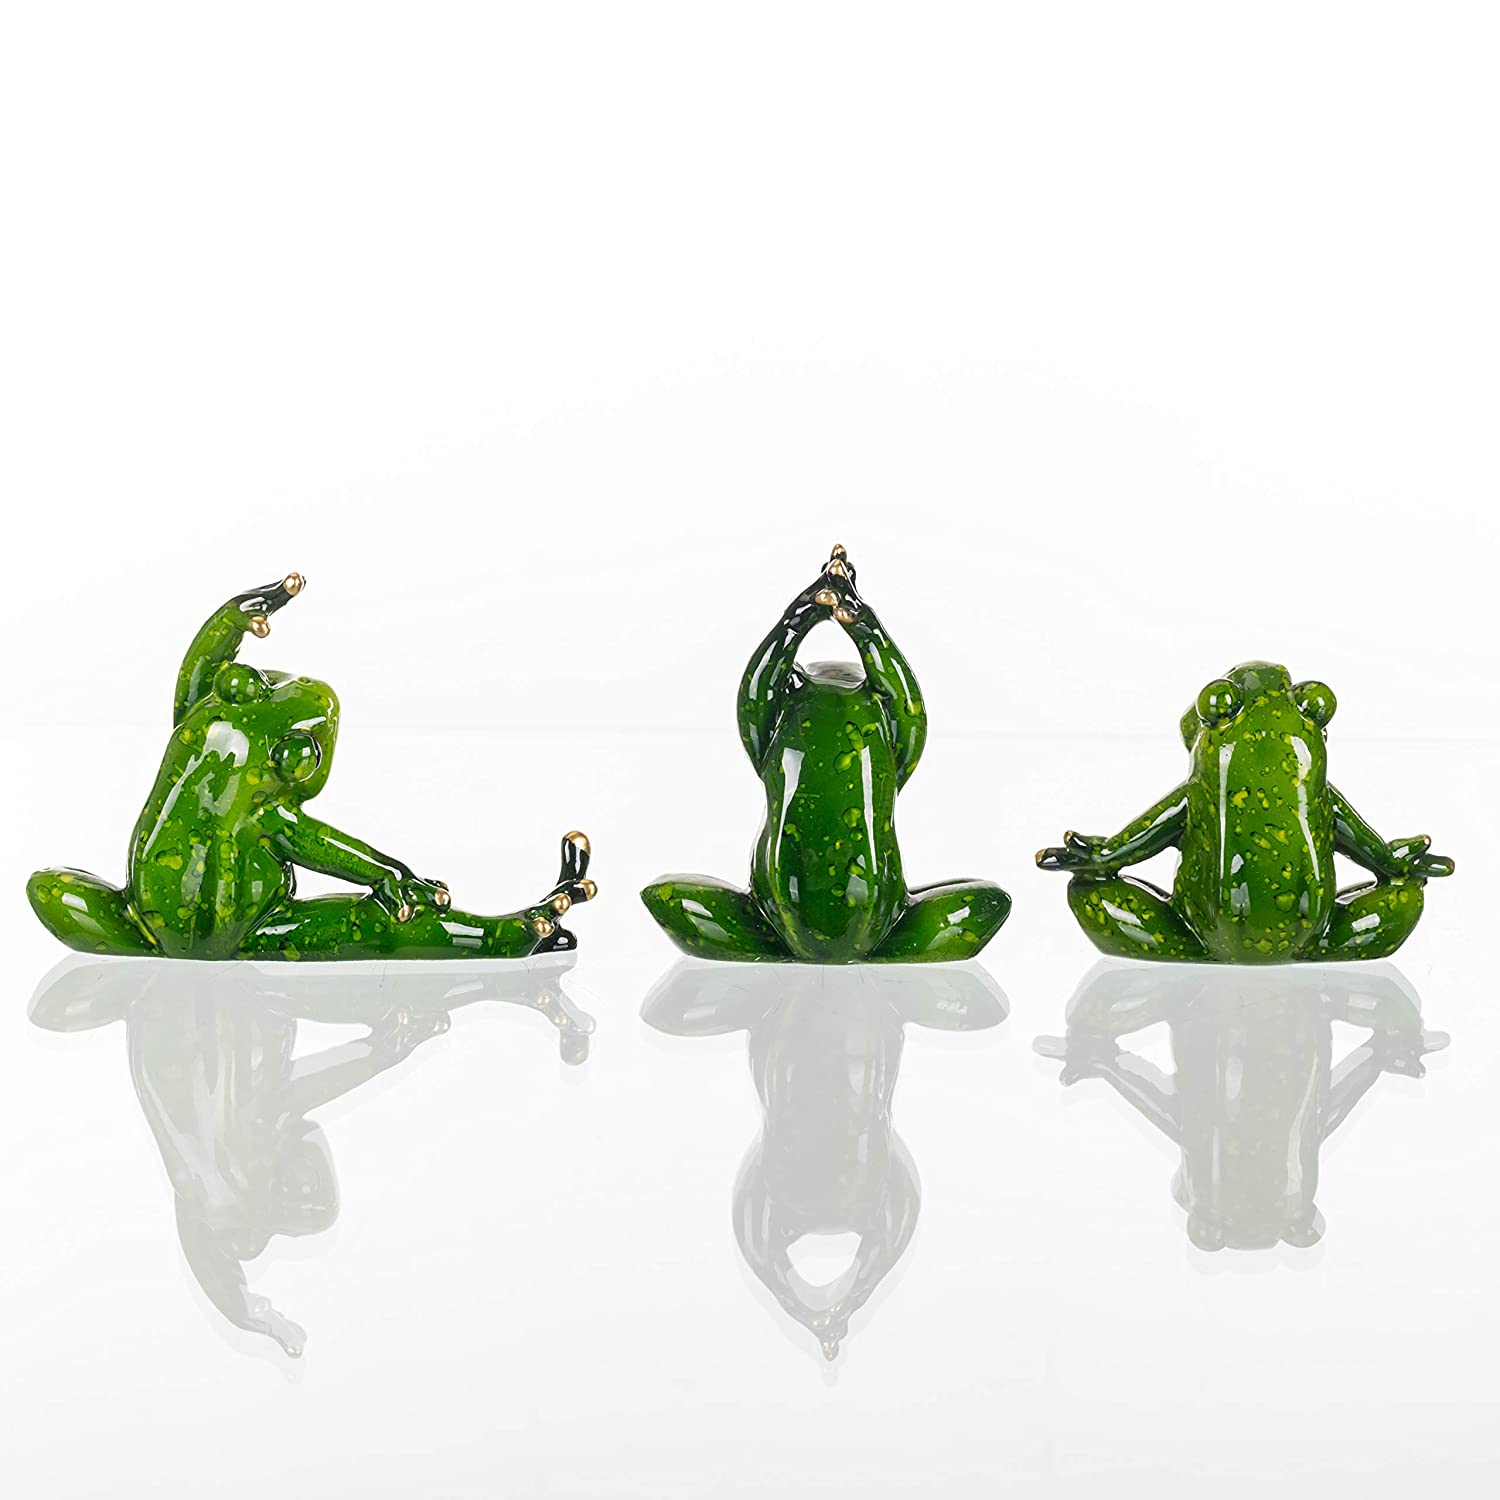 Transpac Enchanted Yoga Frogs Glossy Green 5 x 3 Resin Stone Figurines Set of 6